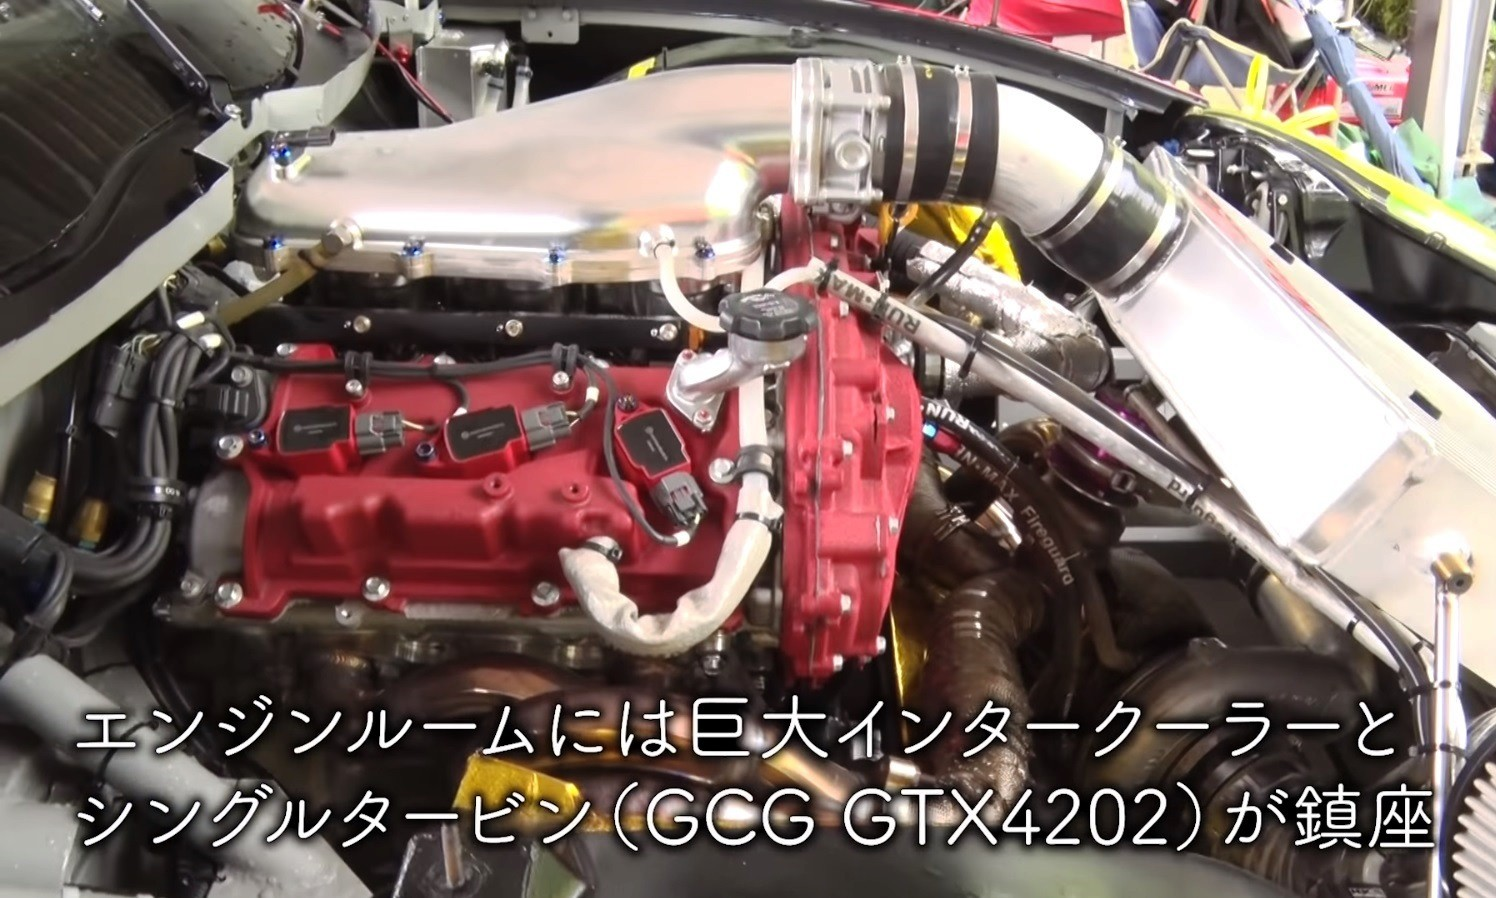 Ferrari 550VR Drift Car engine